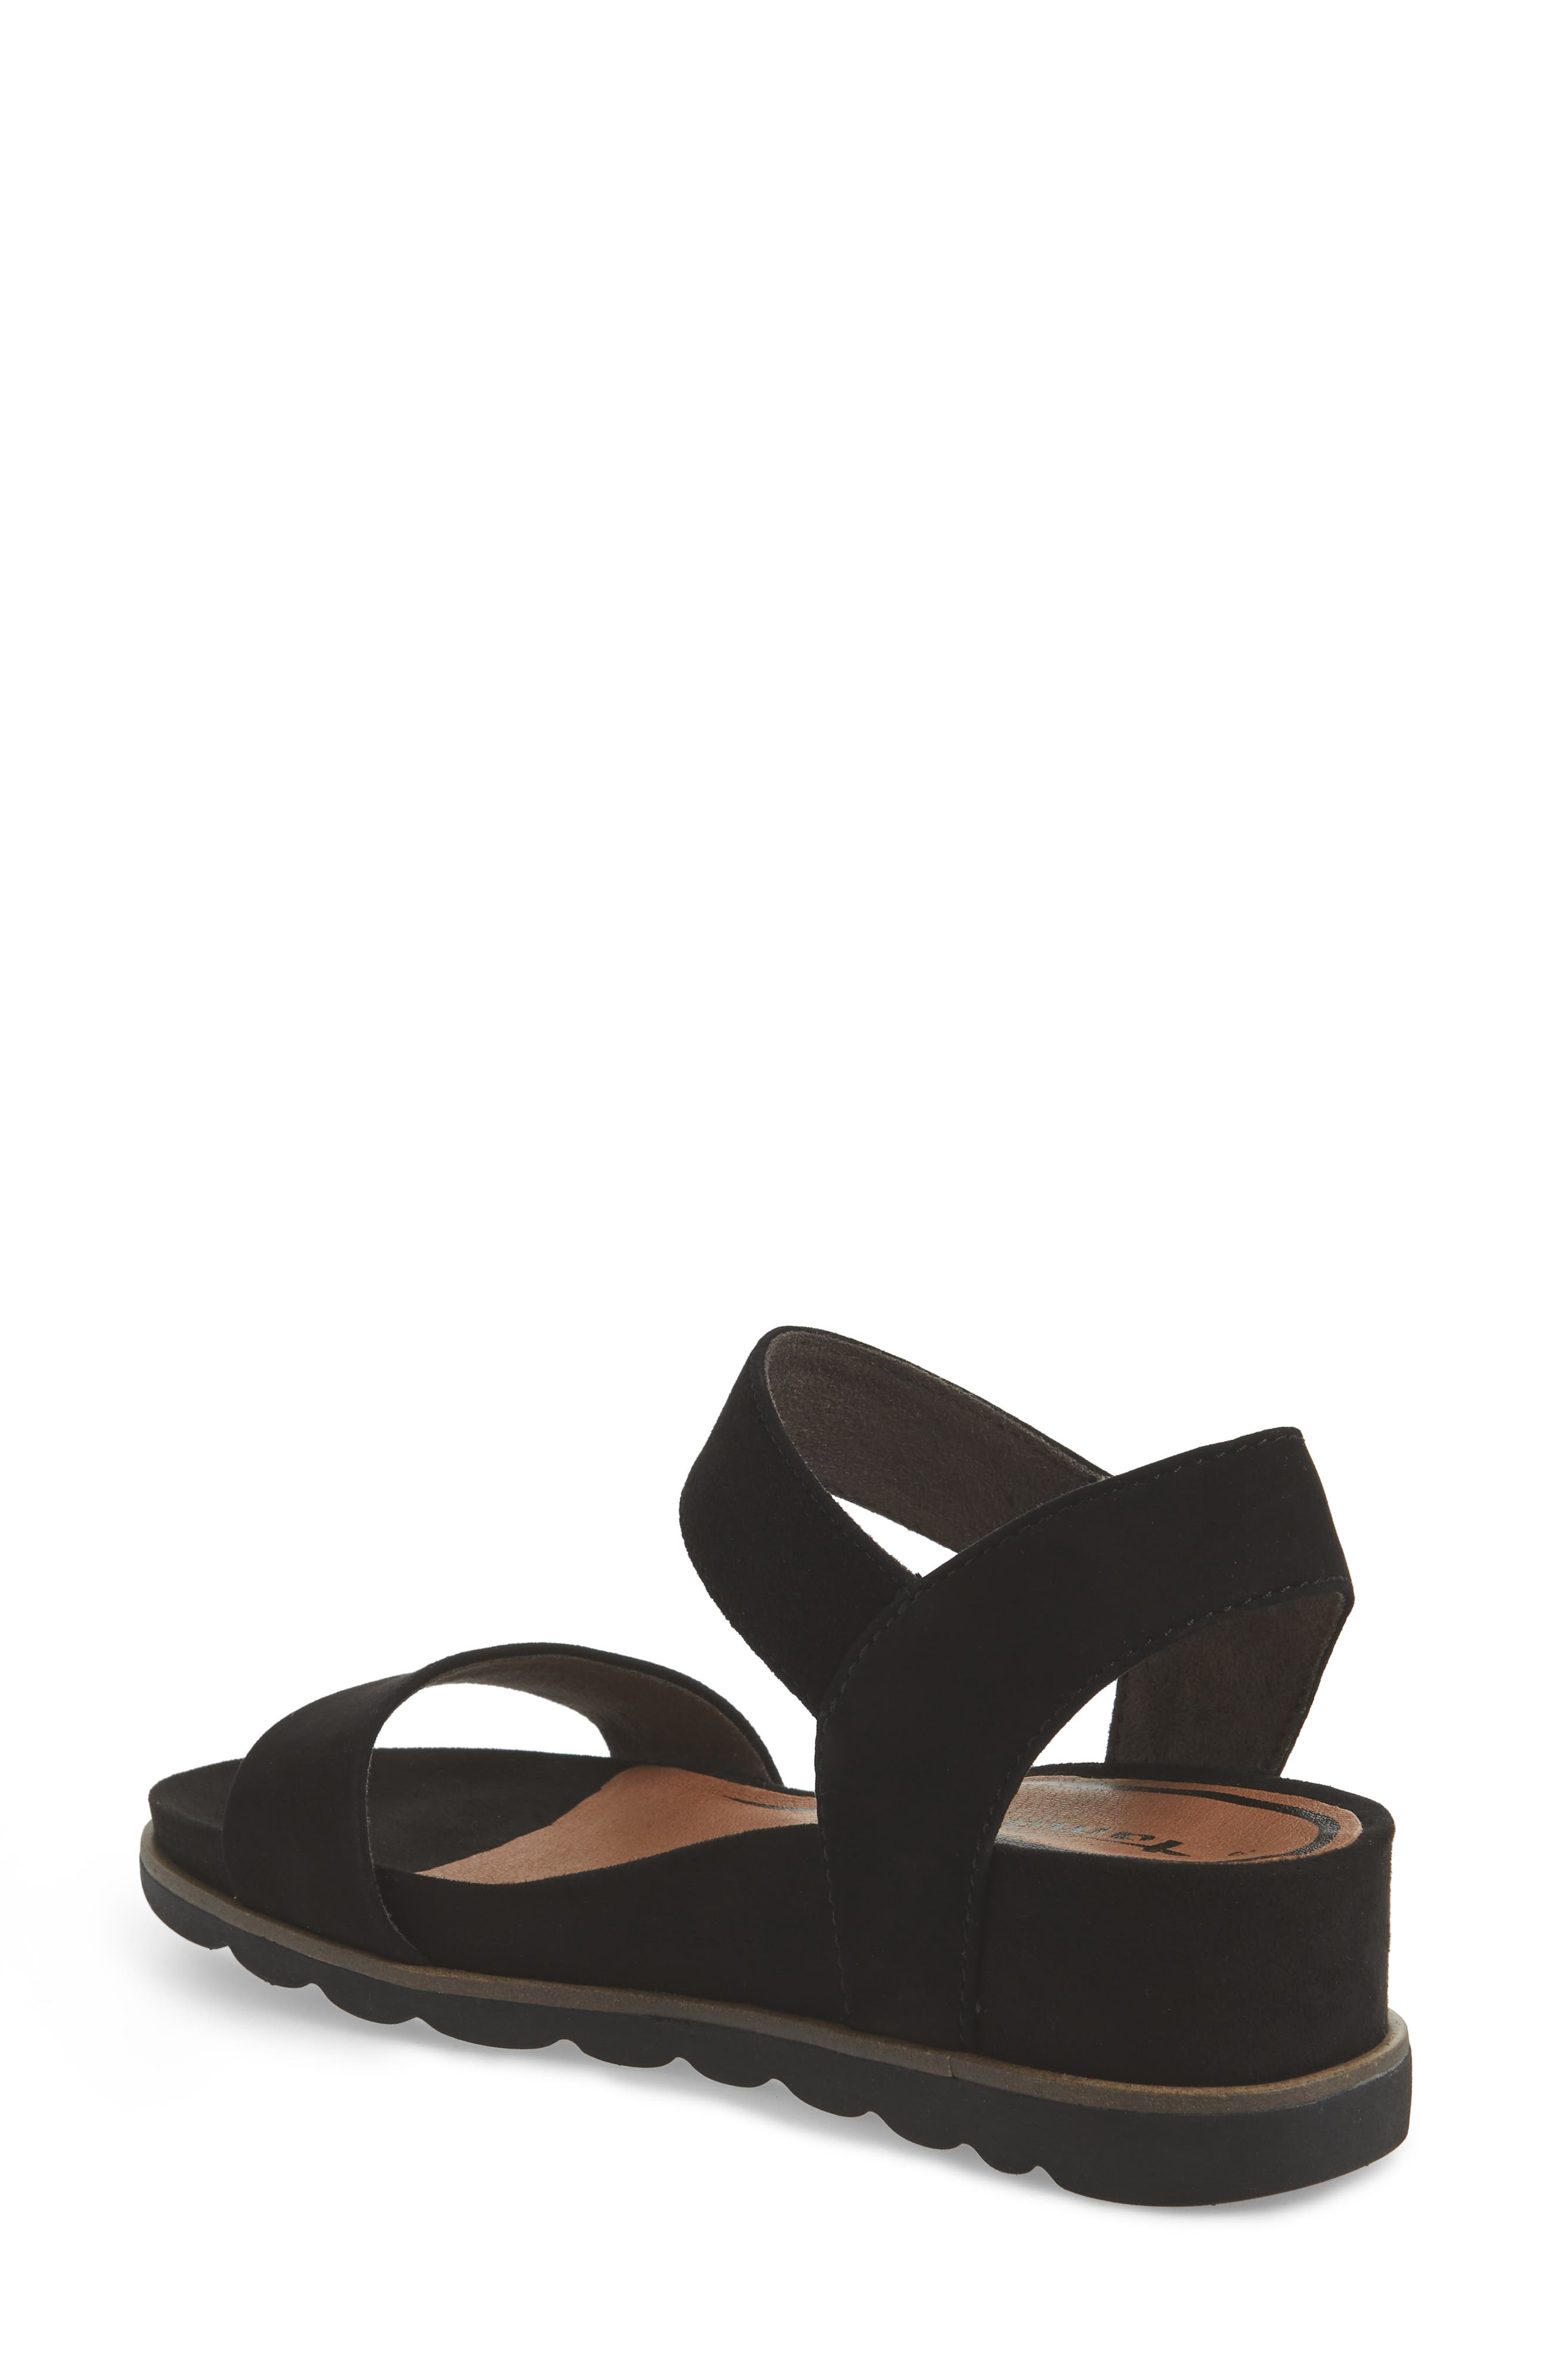 Cory Wedge Sandal,                             Alternate thumbnail 4, color,